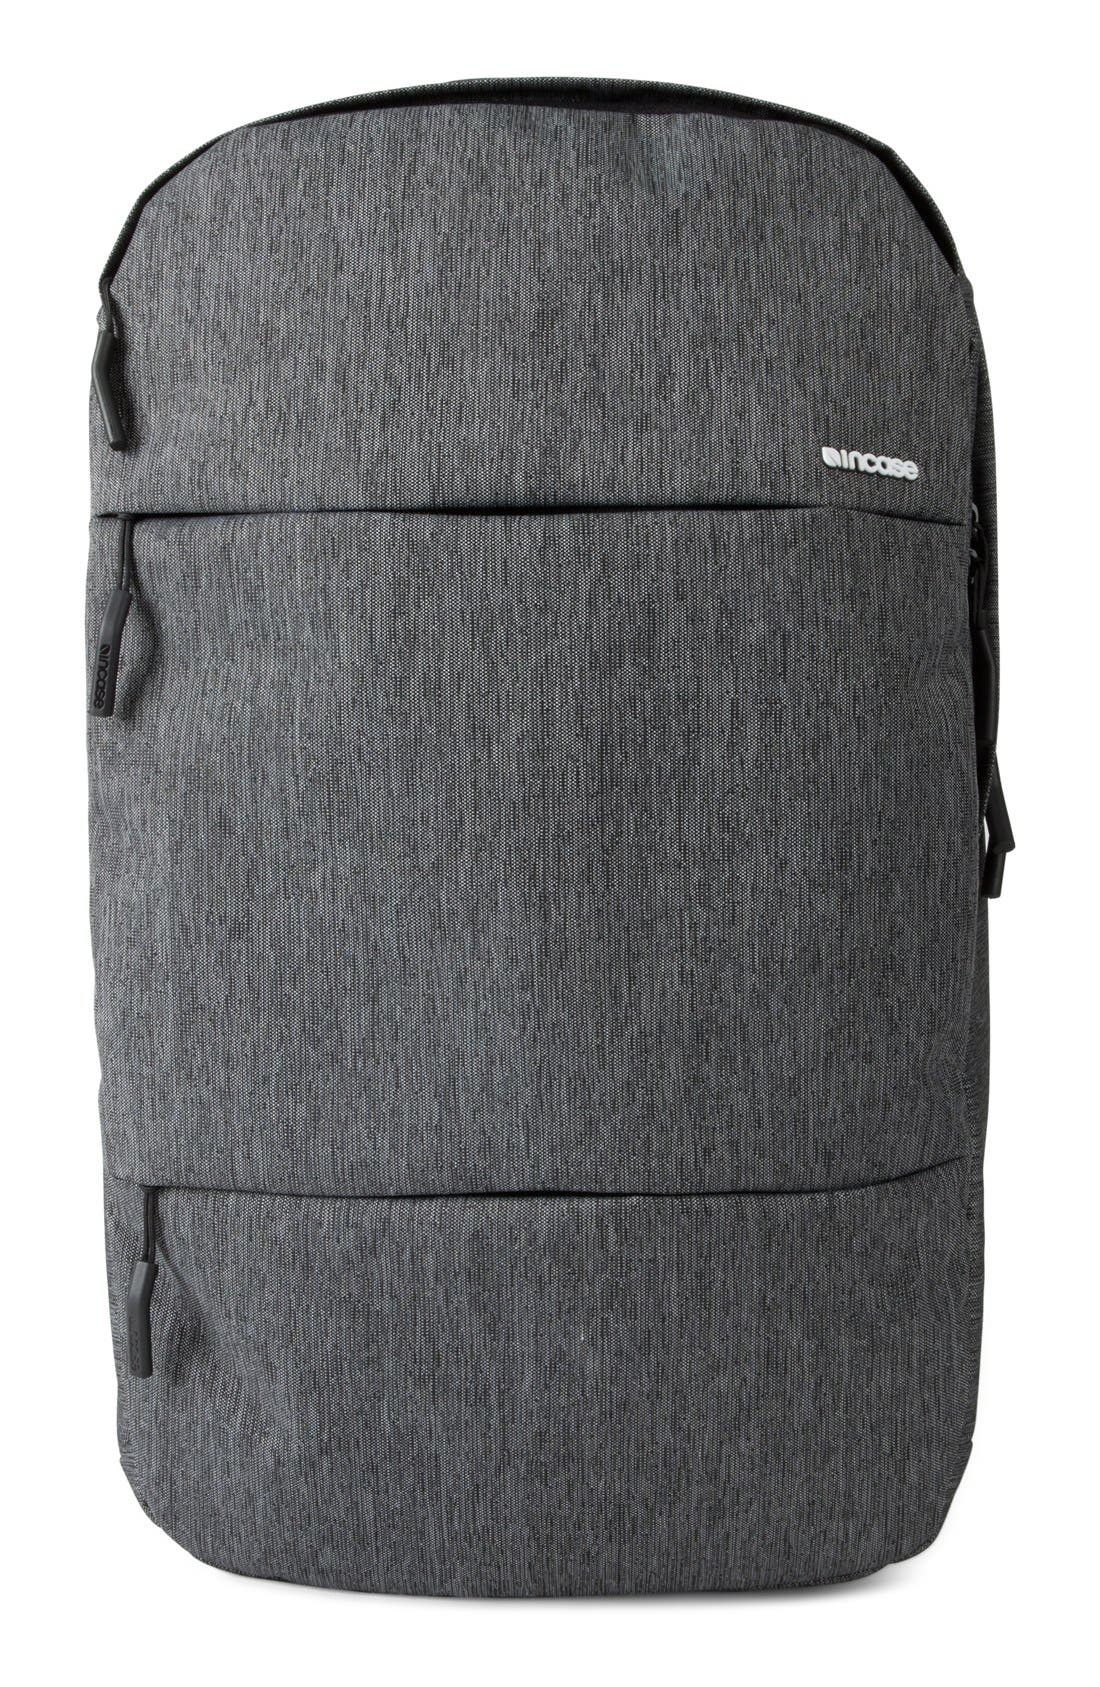 City Collection Backpack,                         Main,                         color, HEATHER BLACK/ GUNMETAL GREY